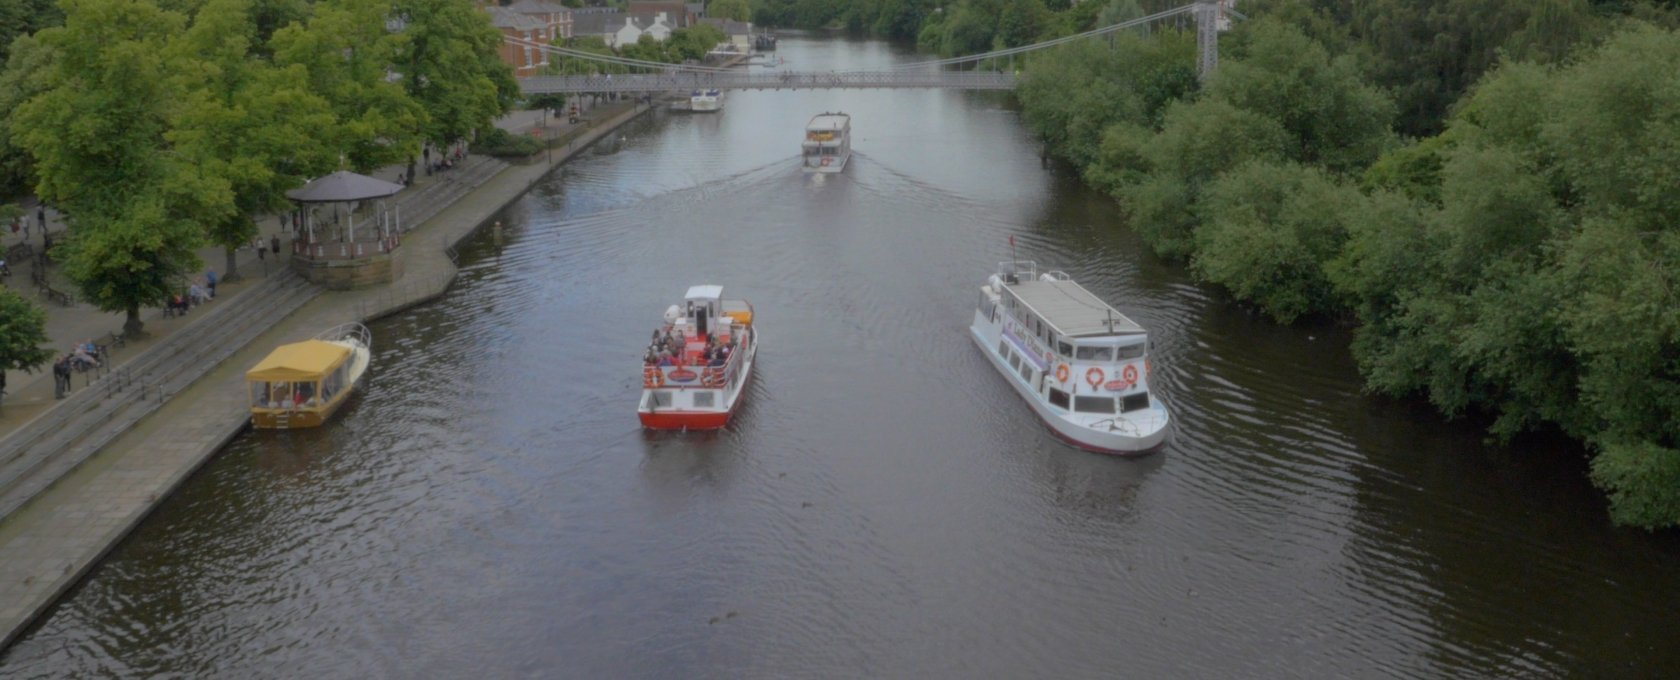 Chester Boats side by side